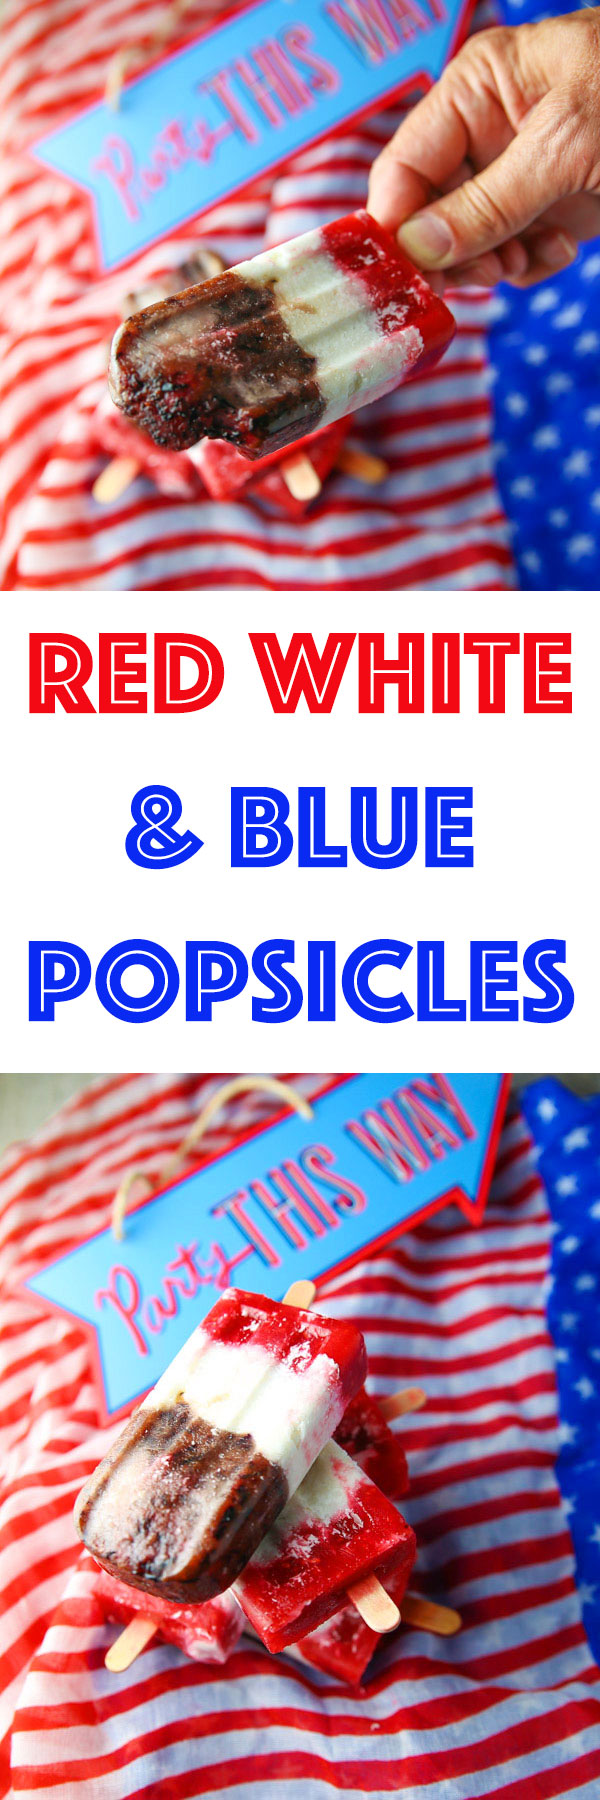 These Red White and Blue Popsicles are perfect for your next Fourth of July party and are super easy to make!